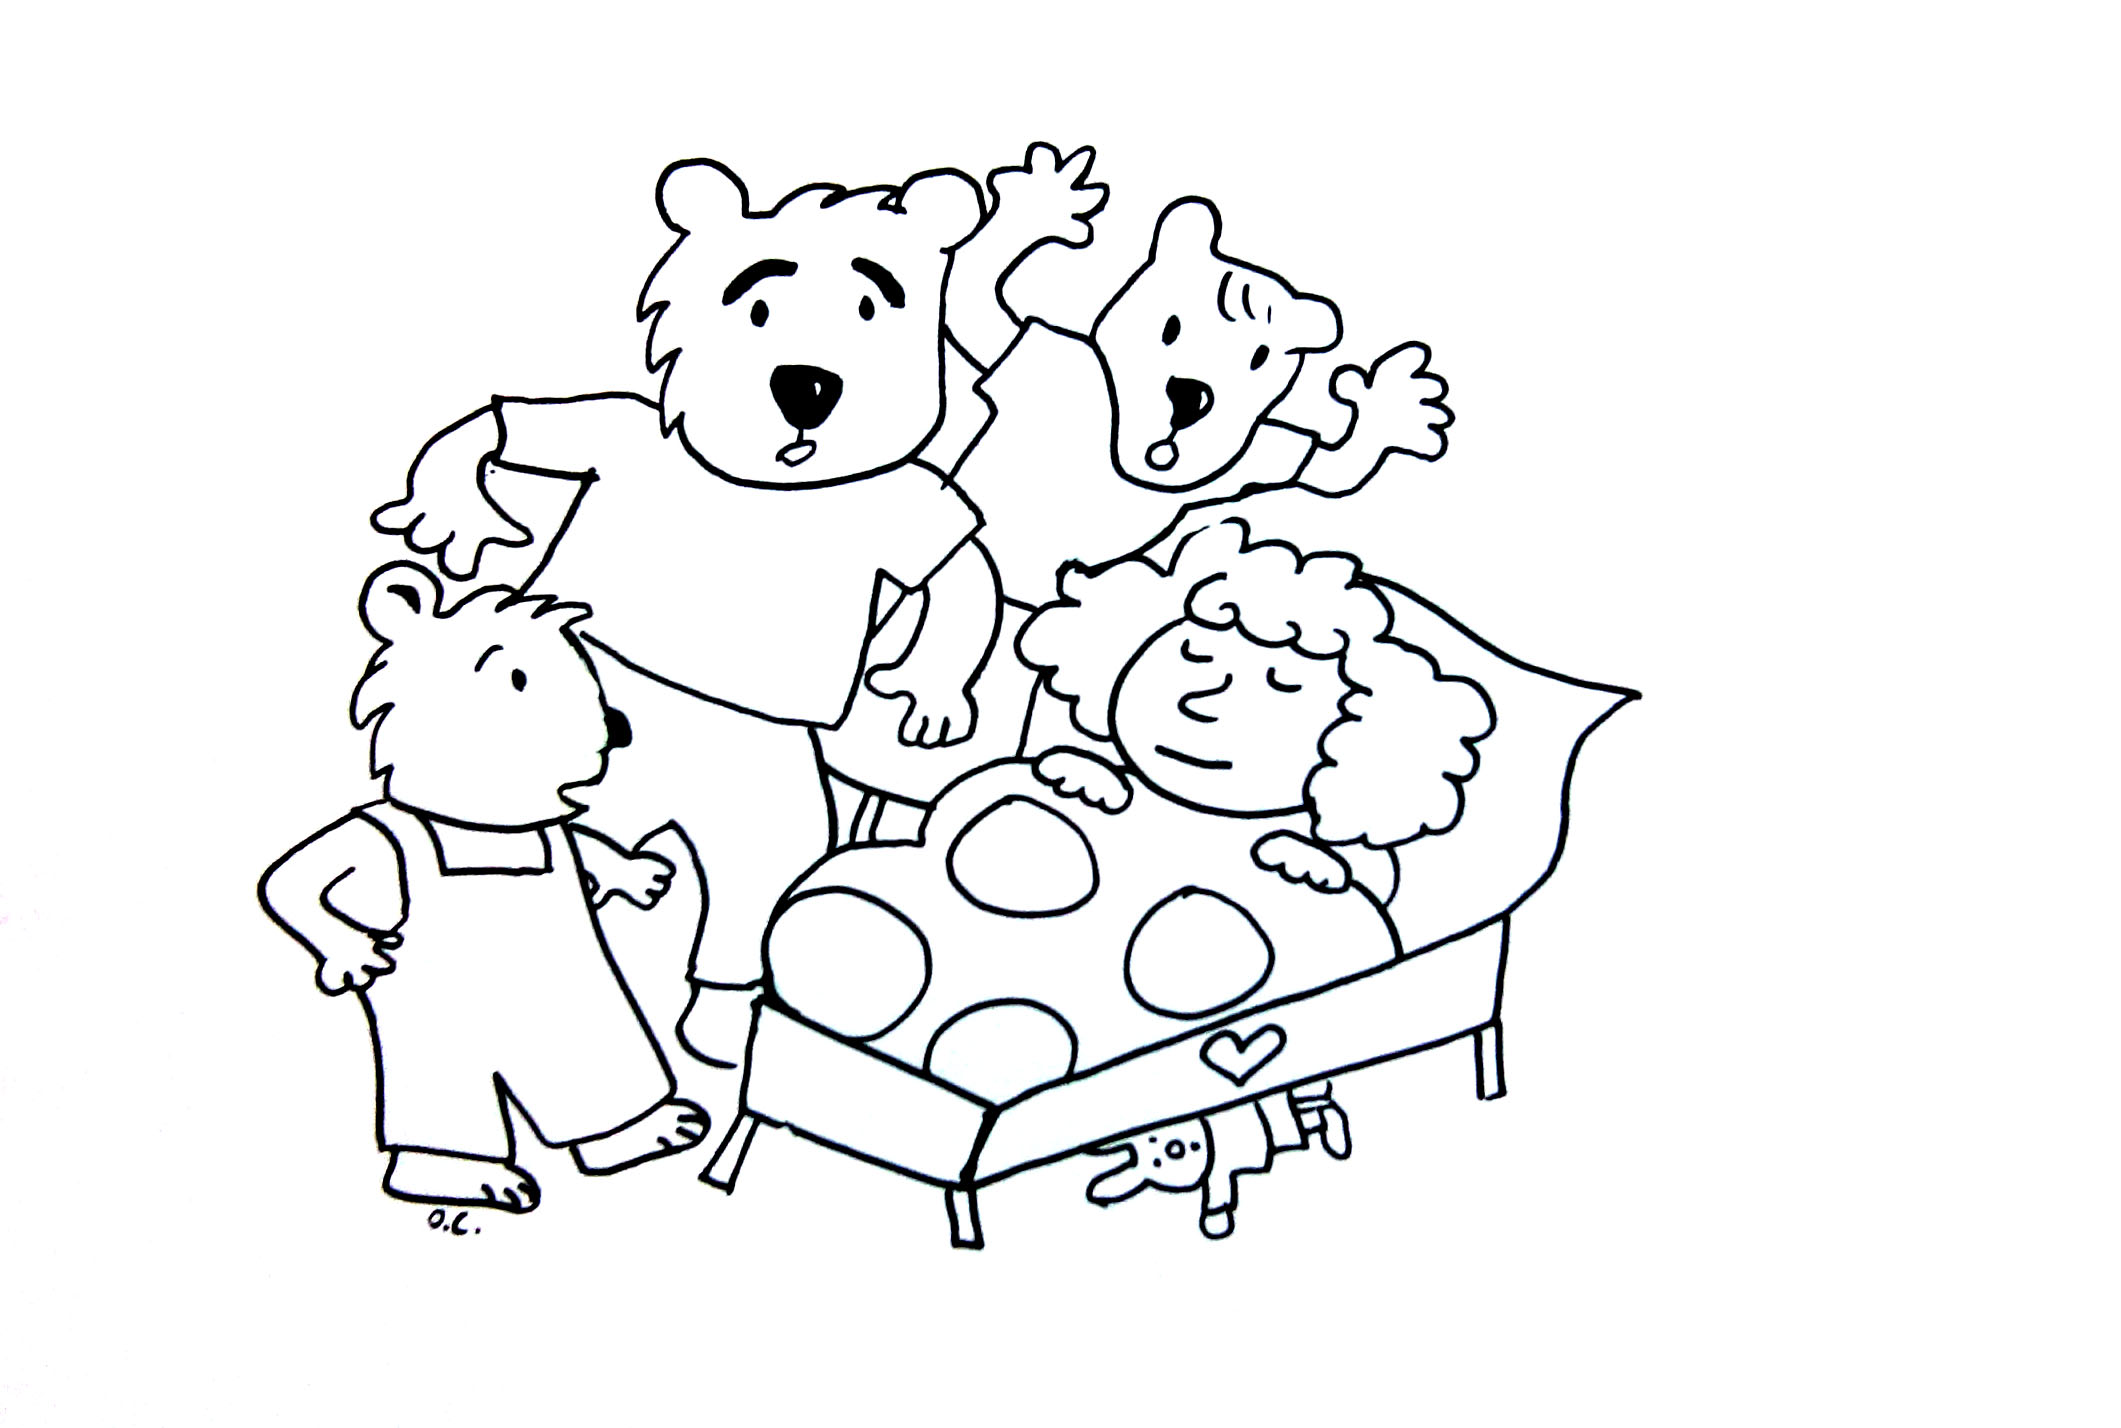 Image Result For Pregoldilocks And The Three Bears Coloring Pages